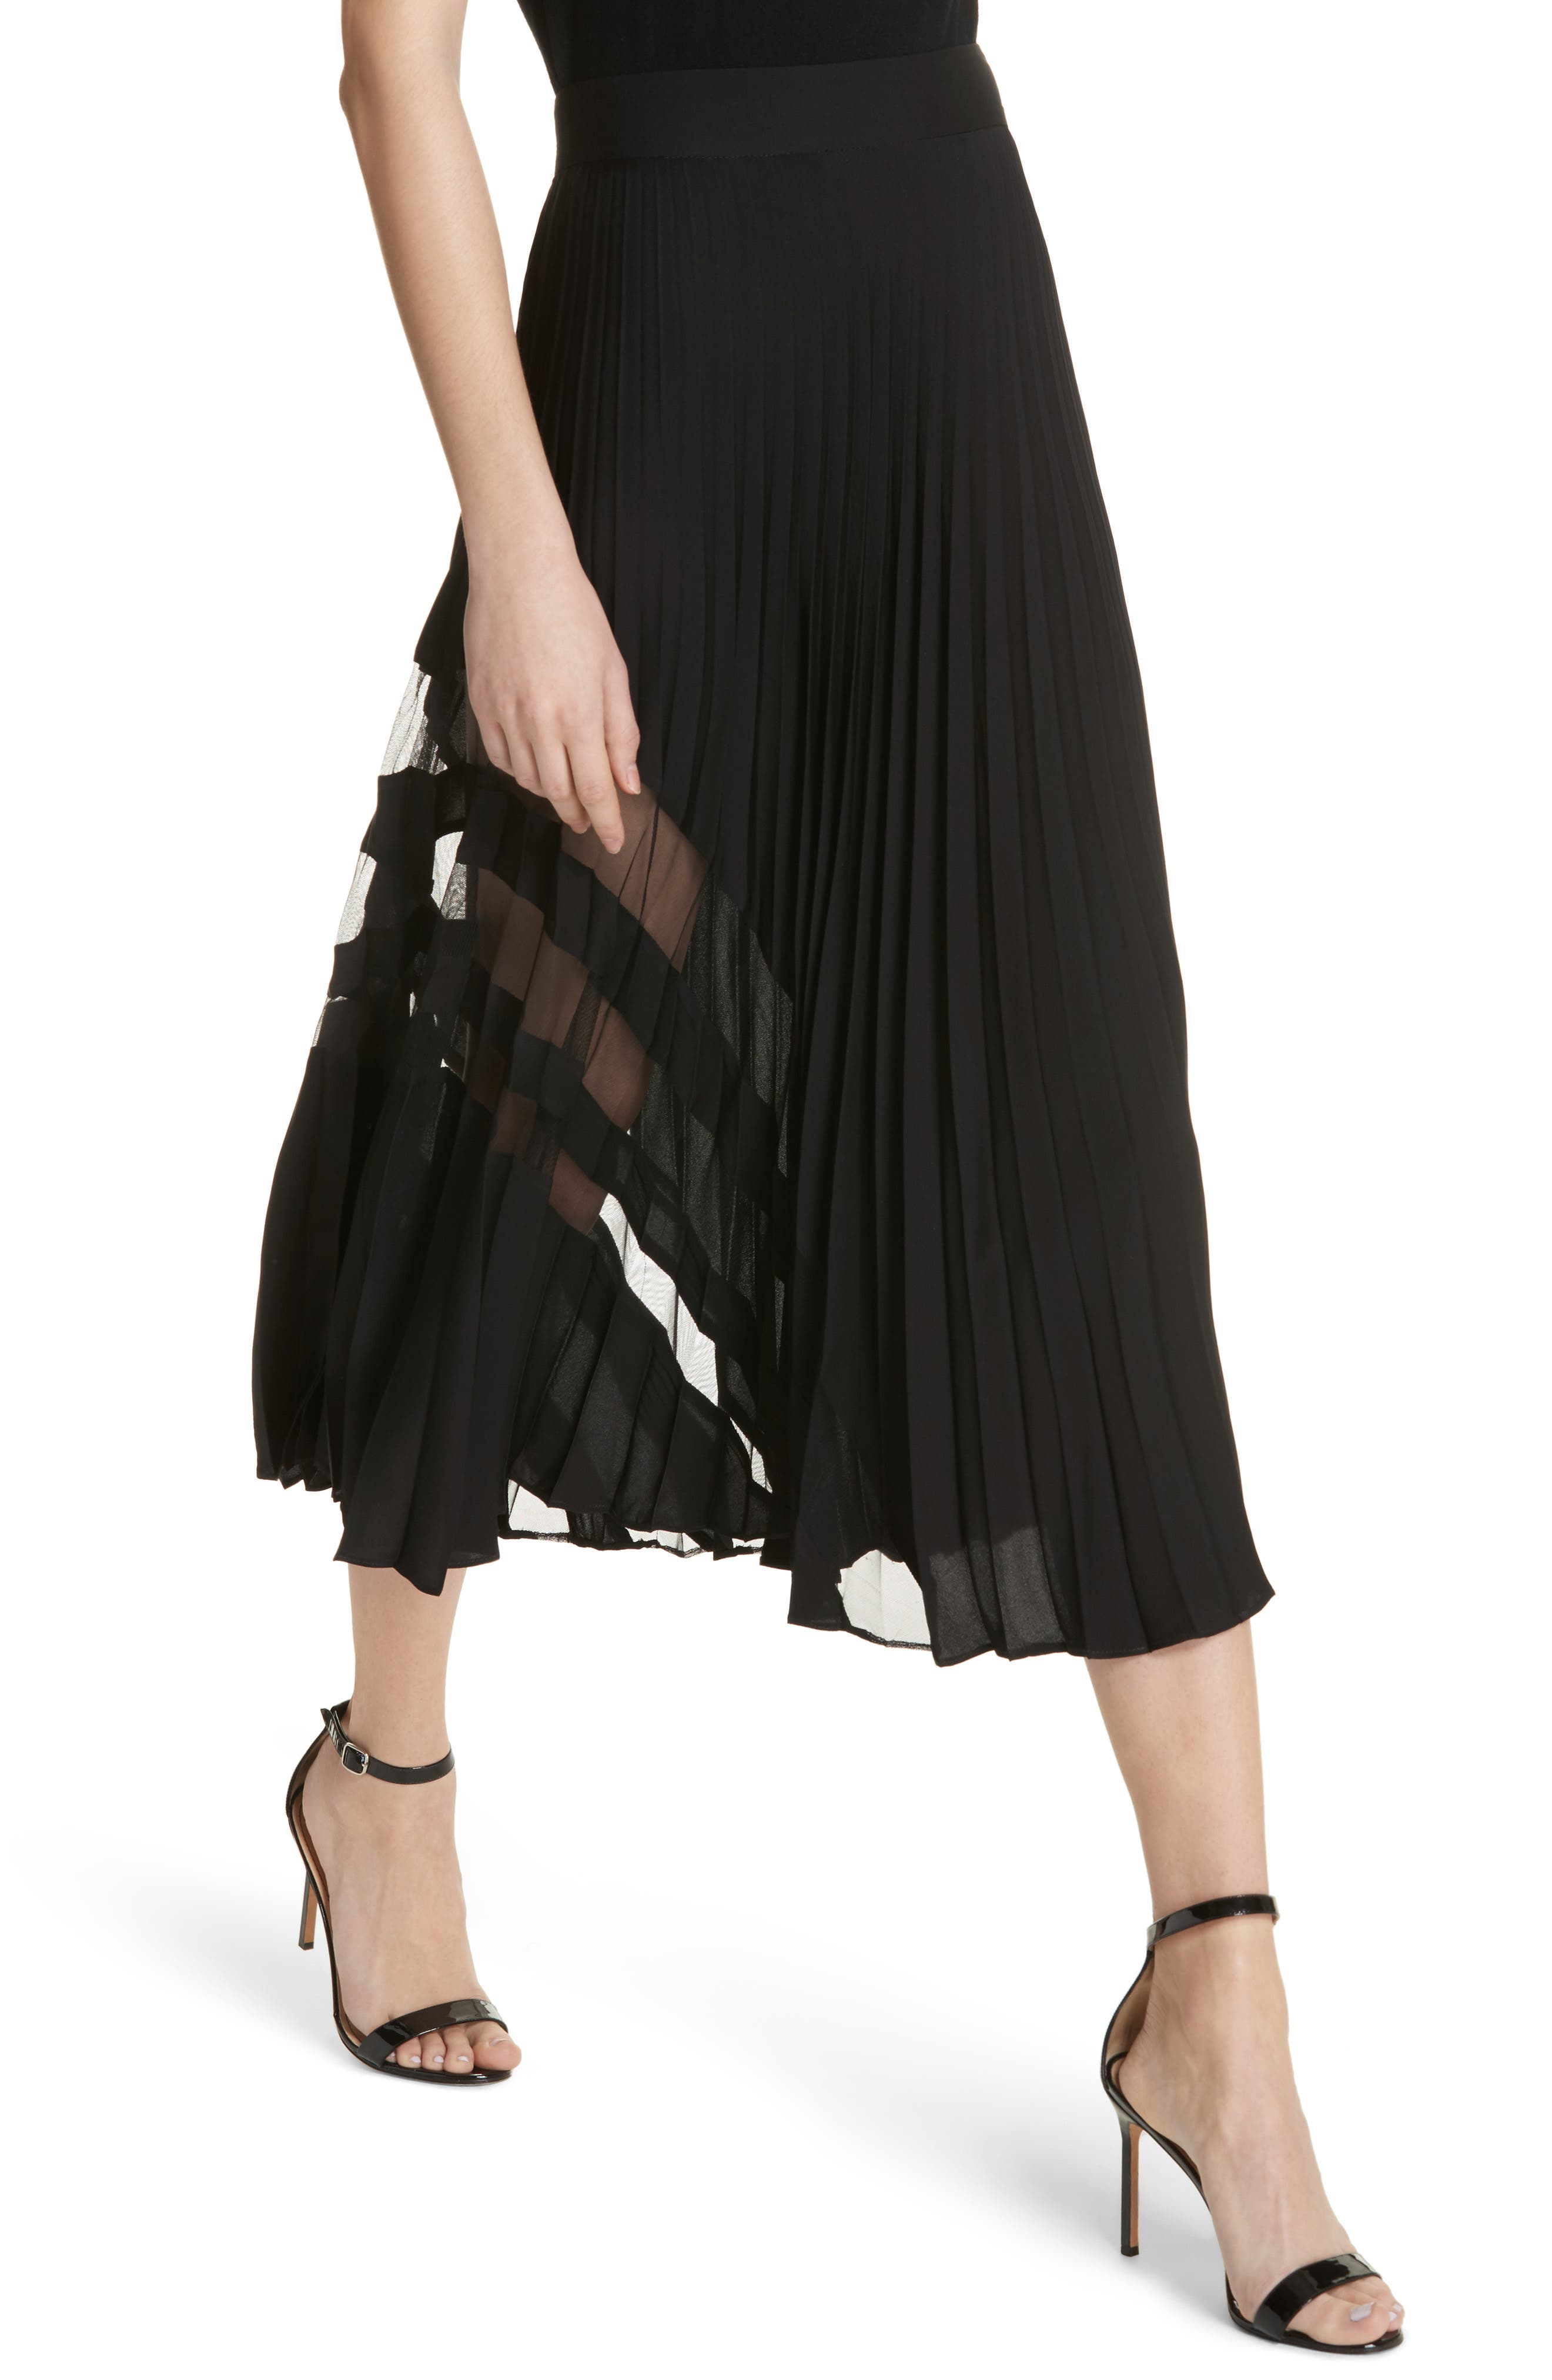 MILLY, Pleated Maxi Skirt, Alternate thumbnail 4, color, 007